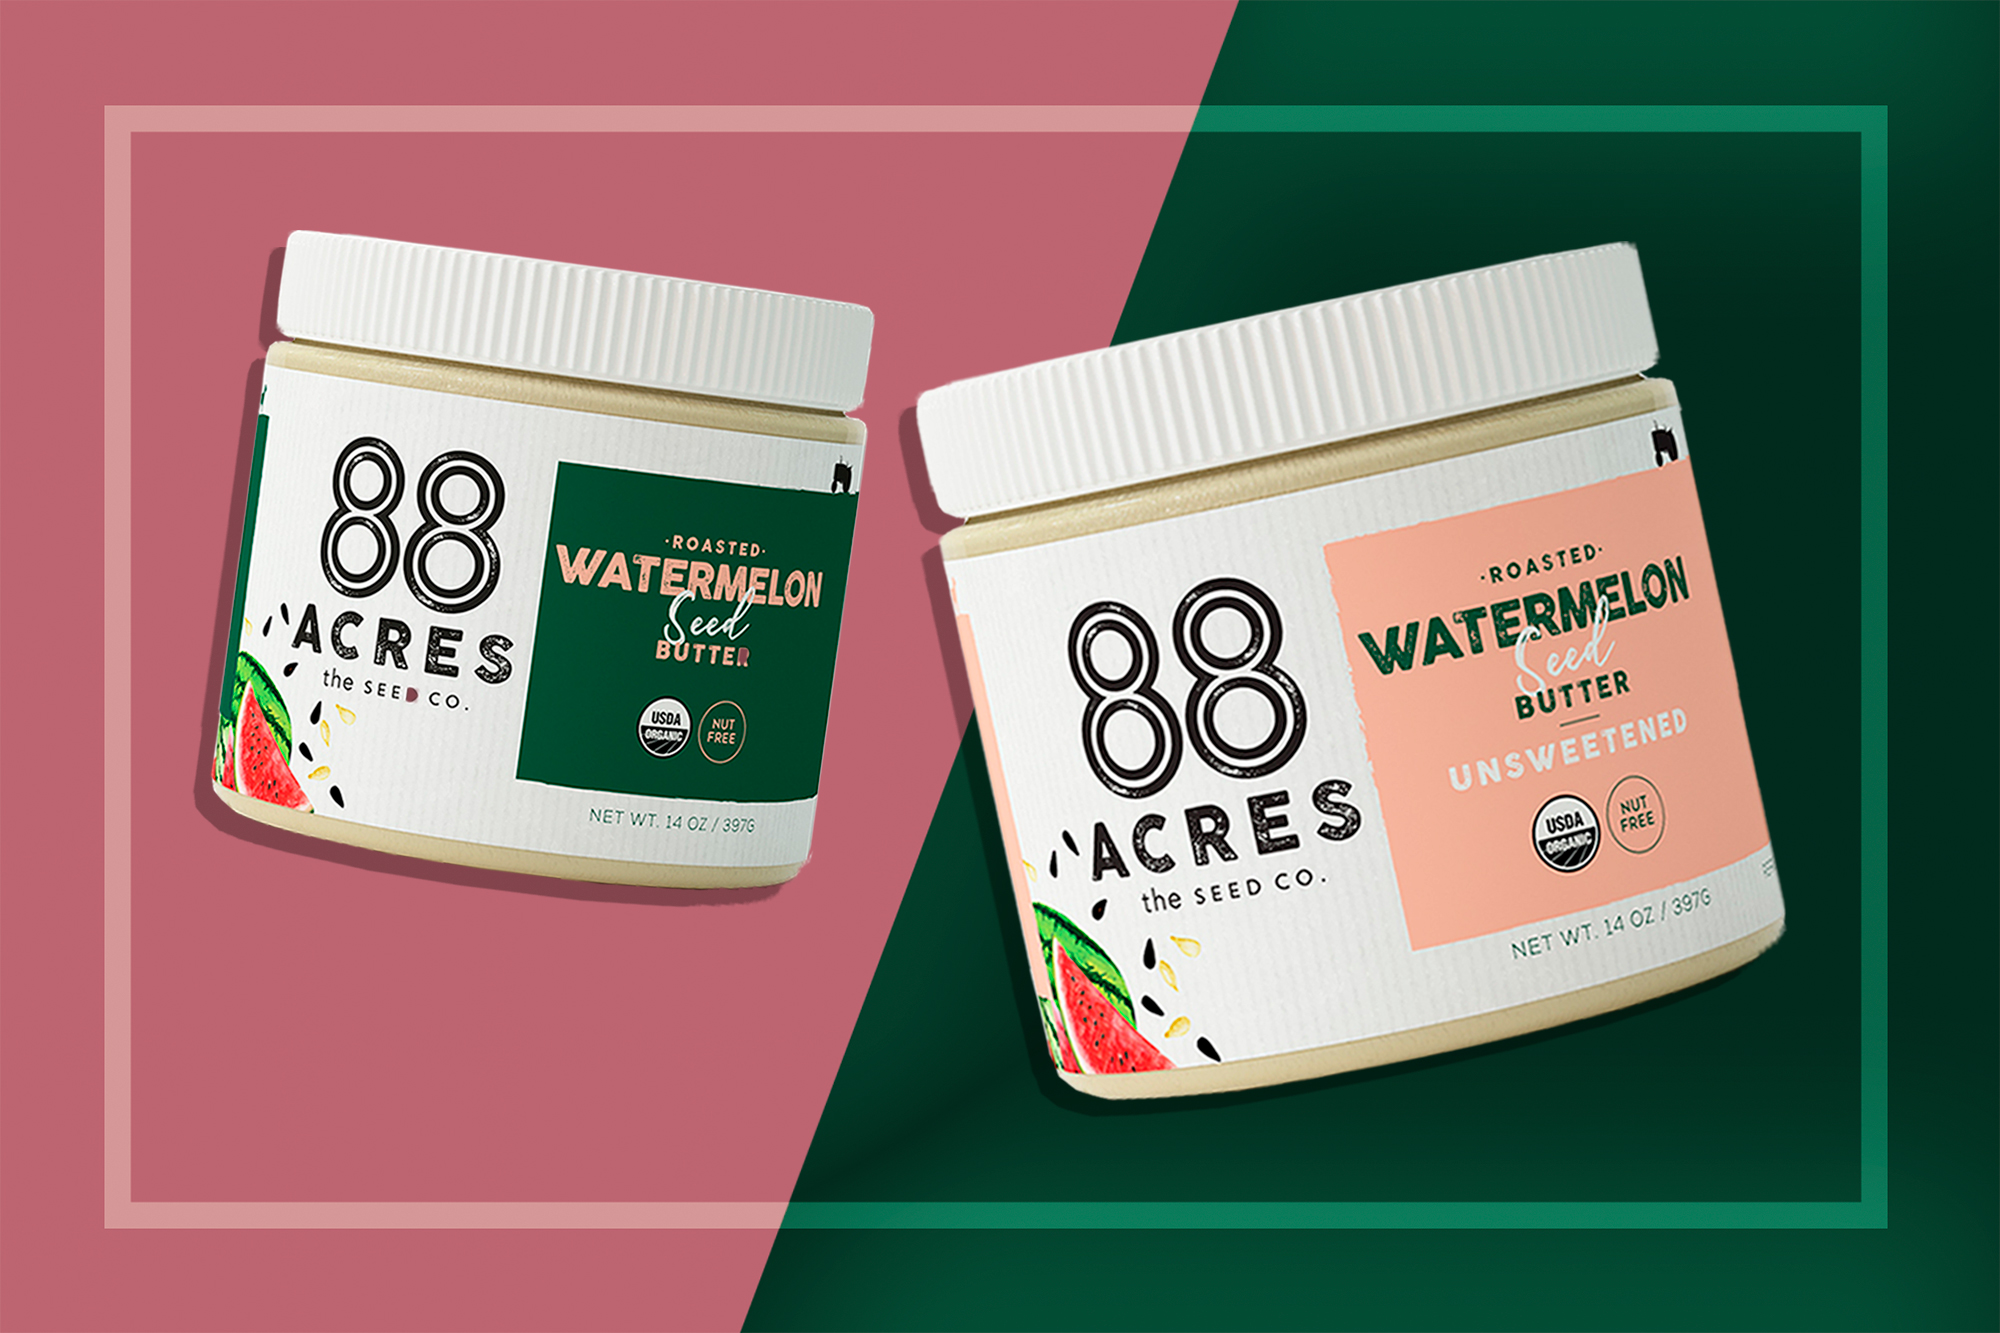 Jars of sweetened and unsweetened watermelon seed butter by 88 Acres